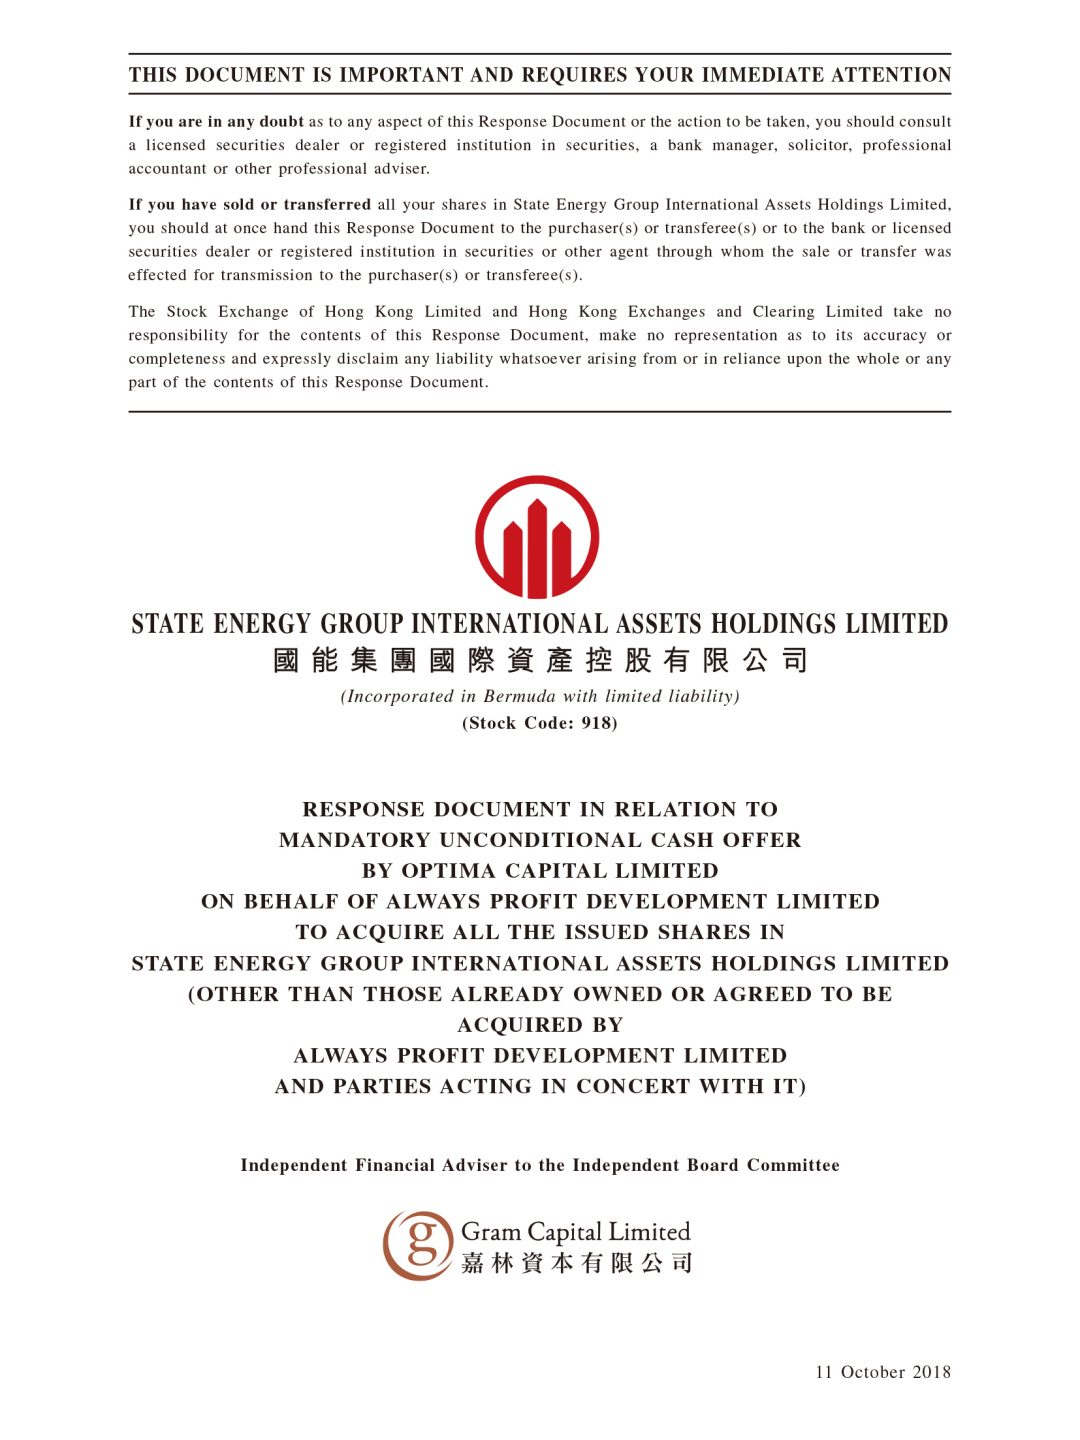 State Energy Group International Assets Holdings Limited